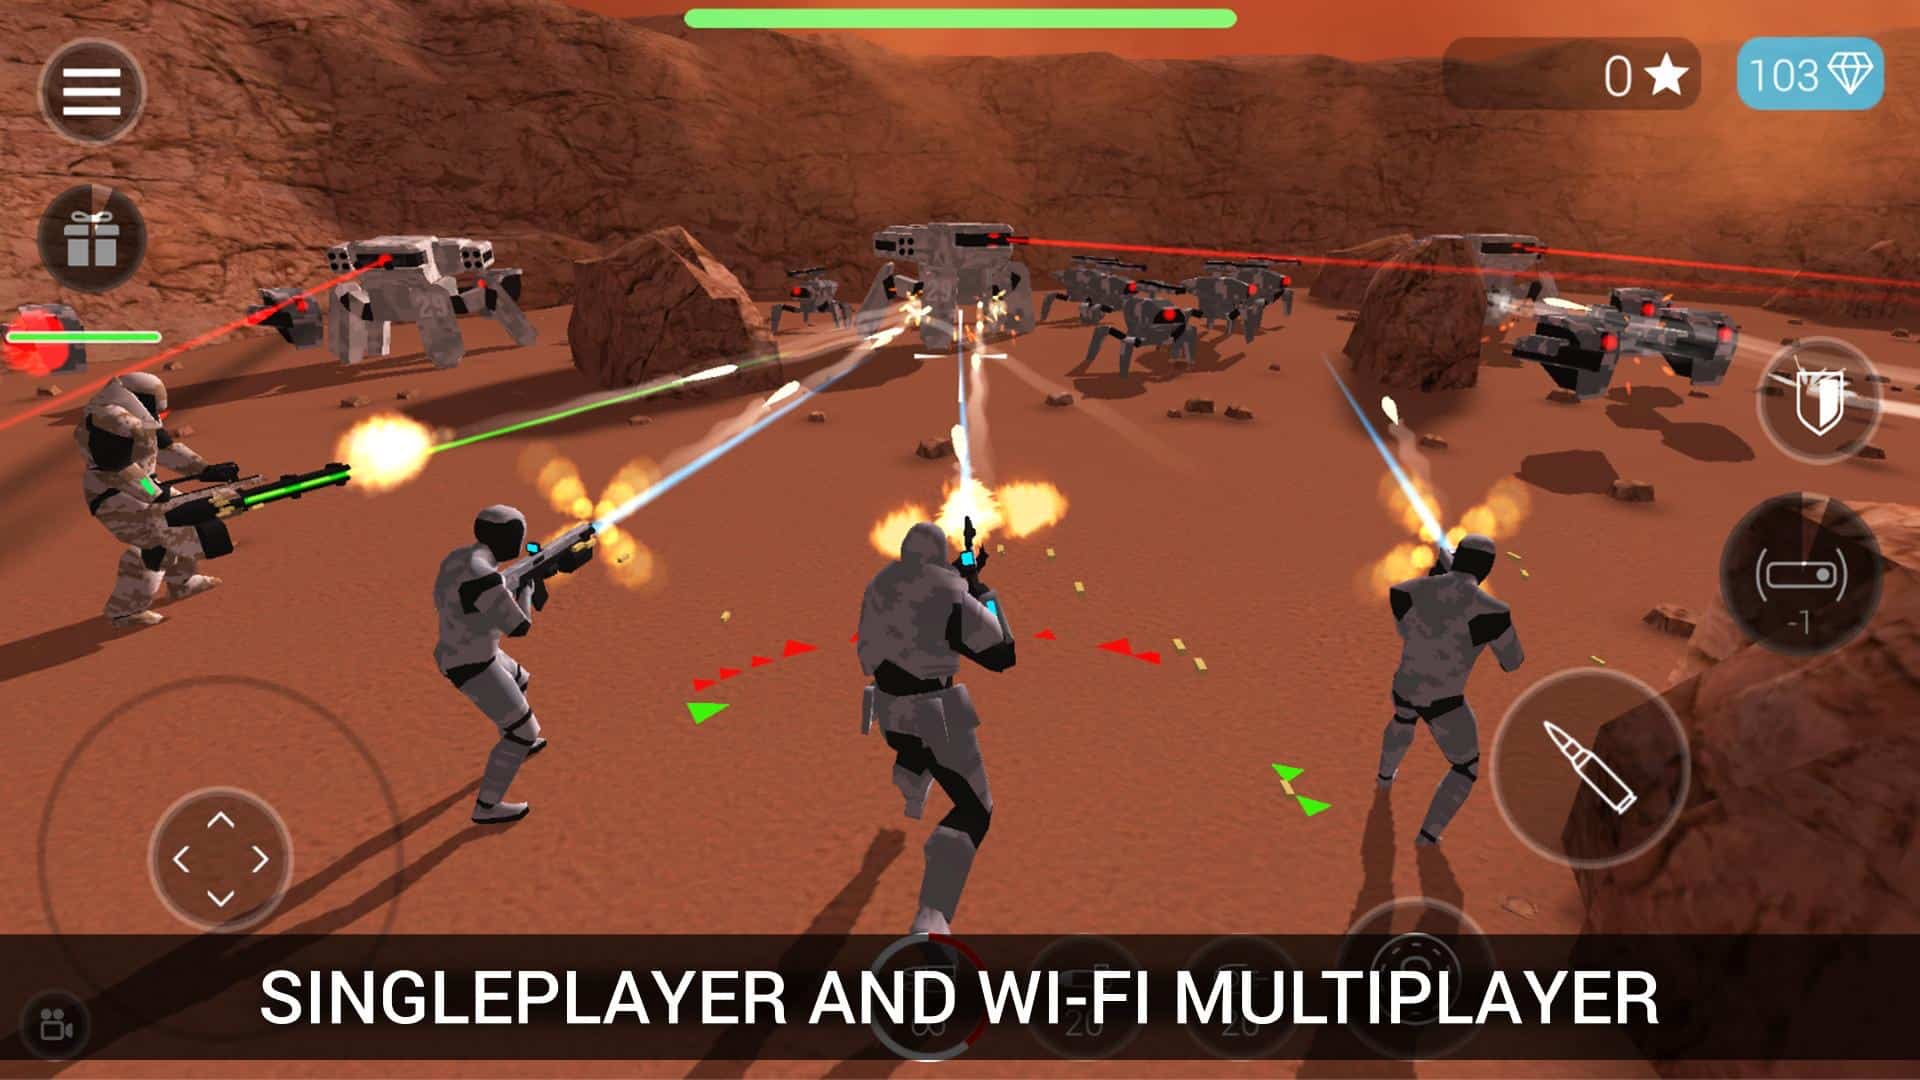 game multiplayer offline hotspot wifi